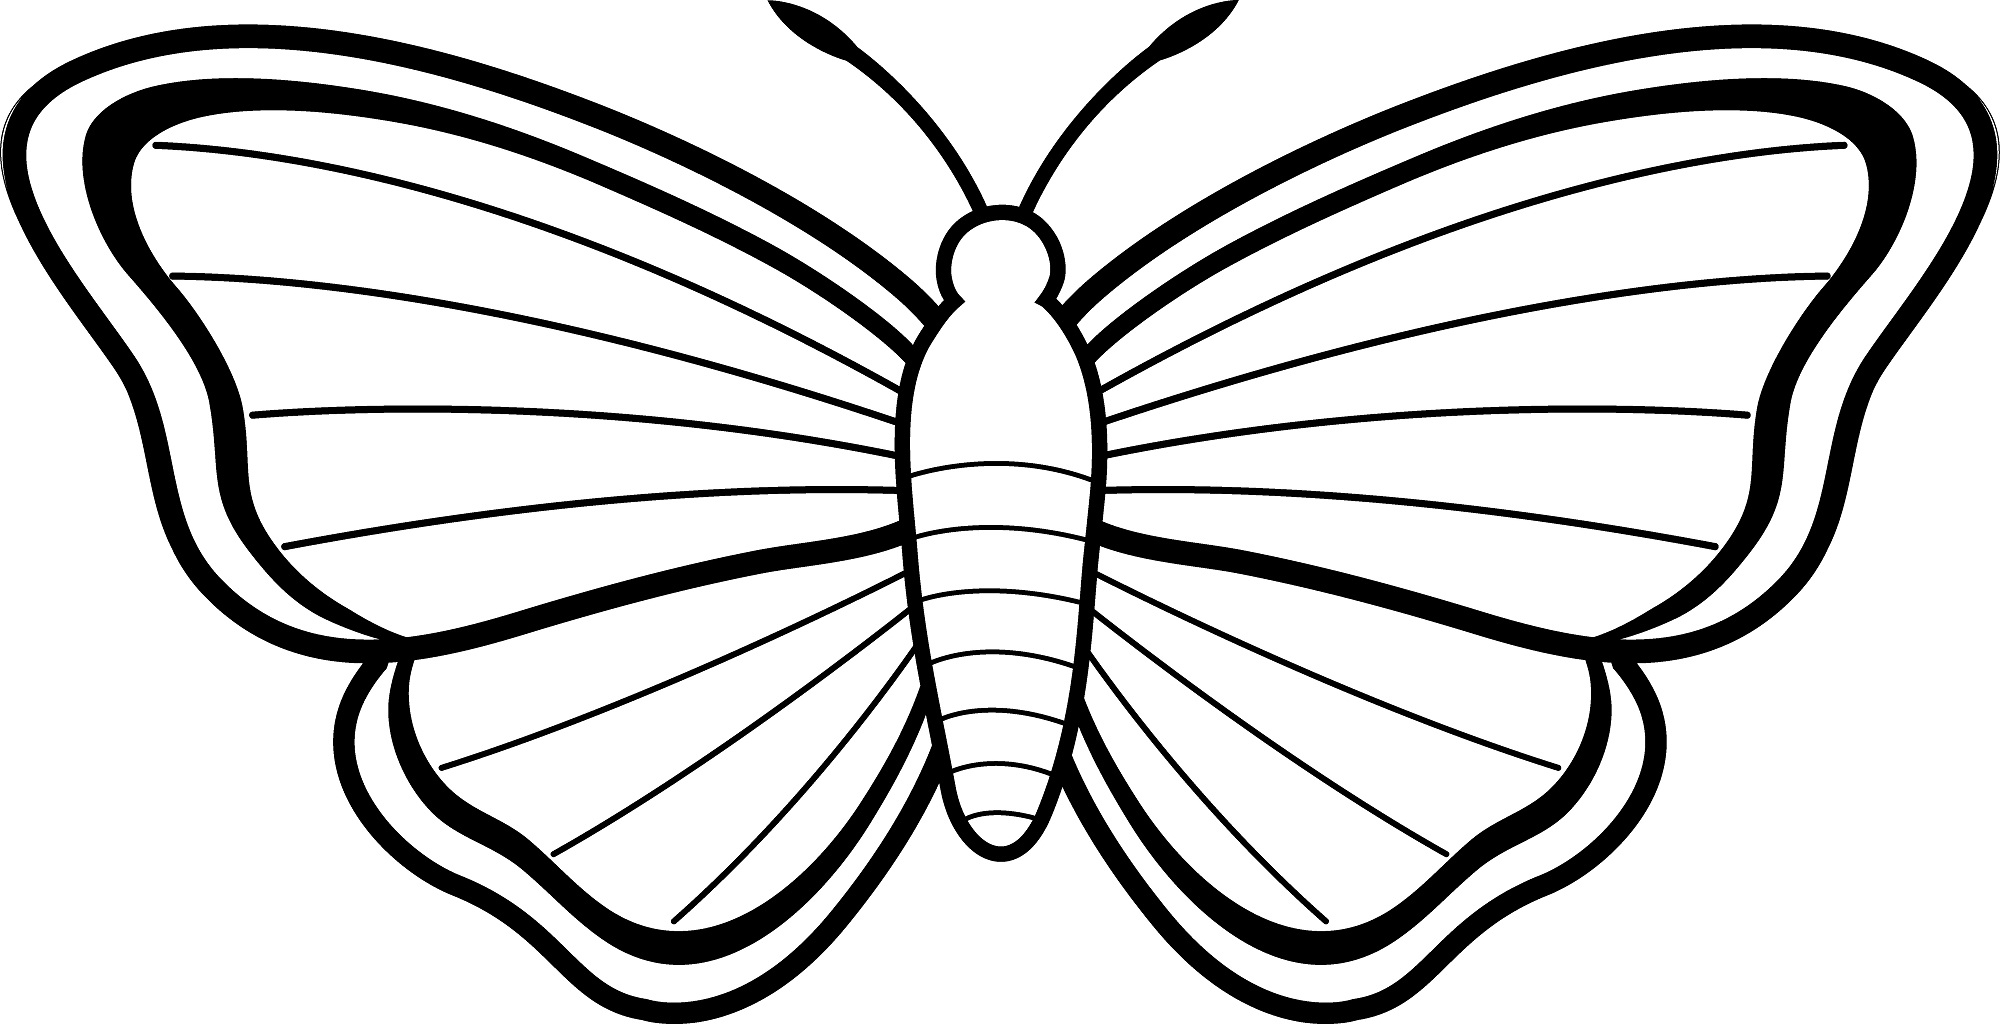 coloring worksheets butterfly free printable butterfly coloring pages for kids coloring worksheets butterfly